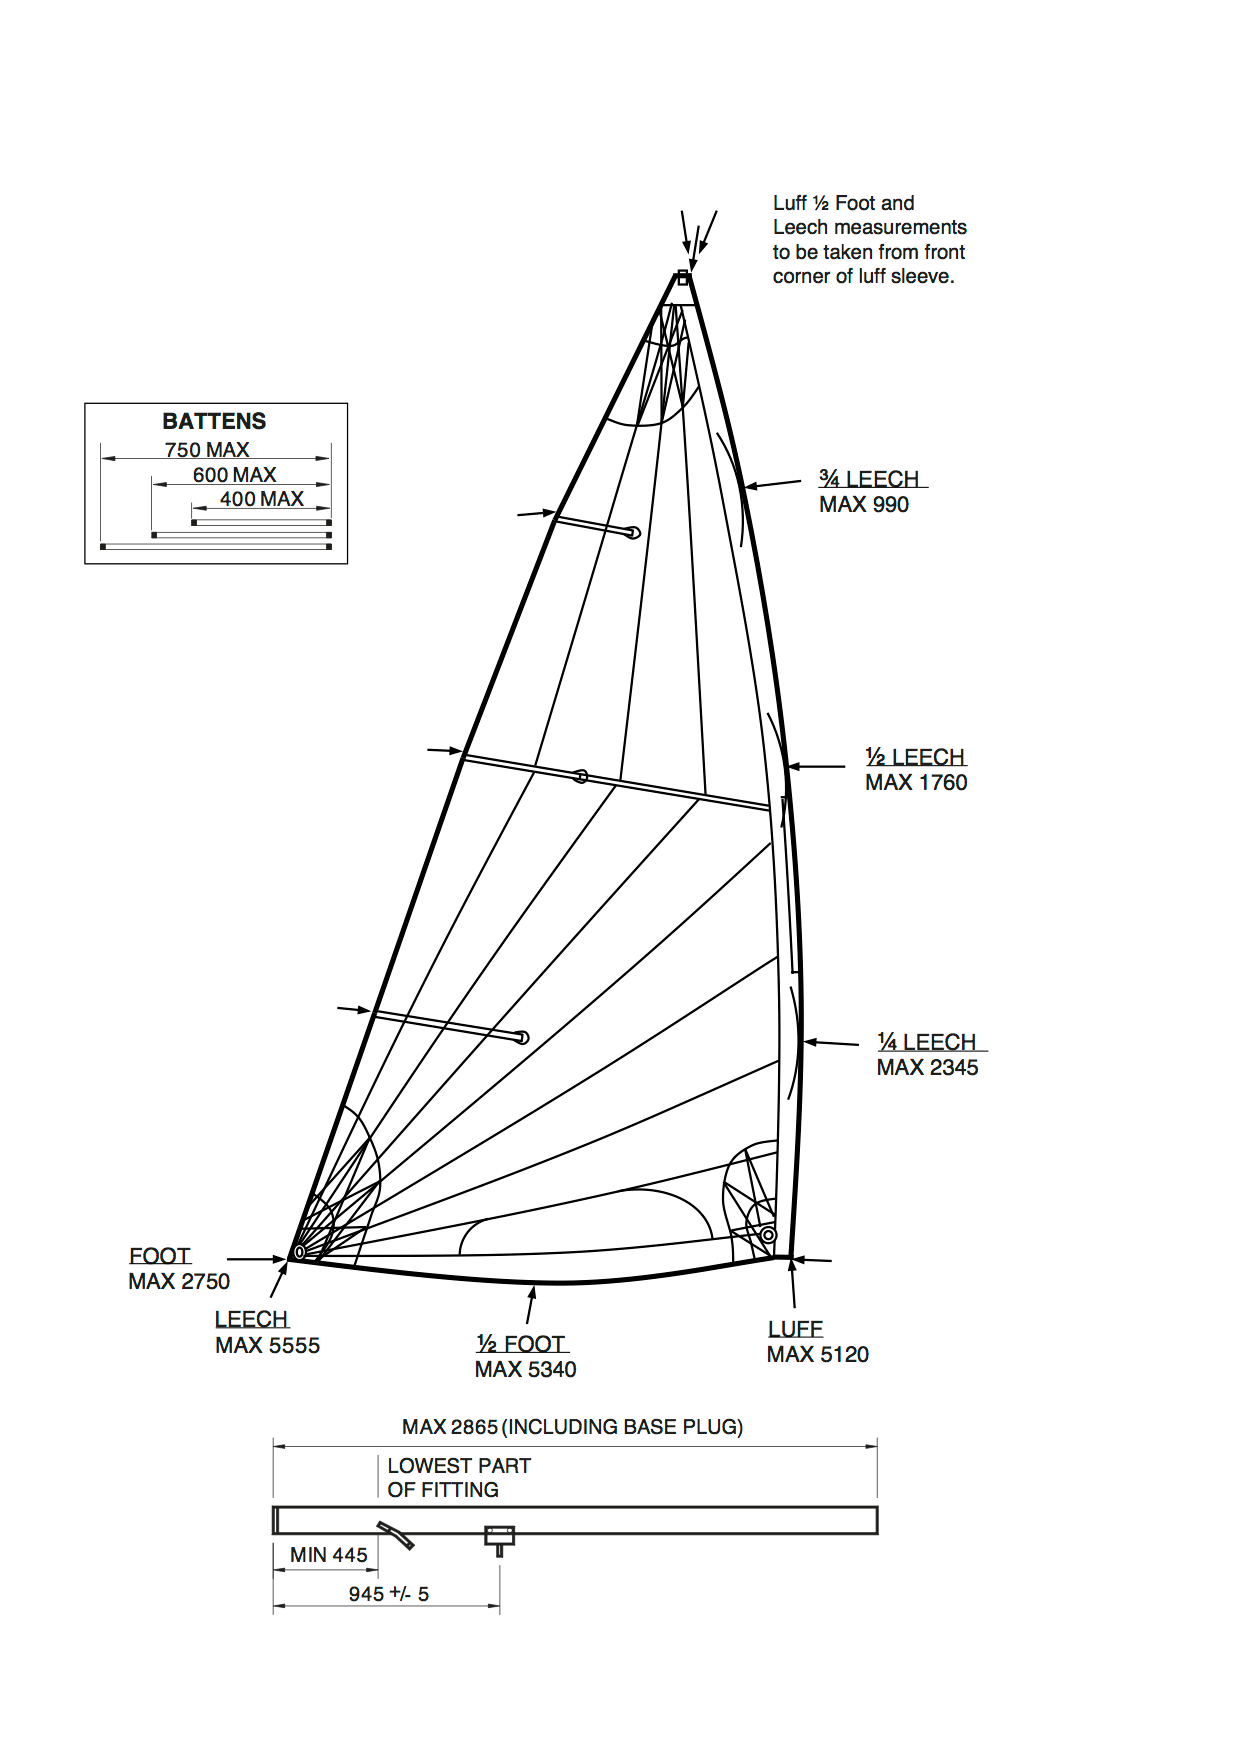 mast rigging diagram 2001 ford focus fuse wiring diagrams for a sailboat welding